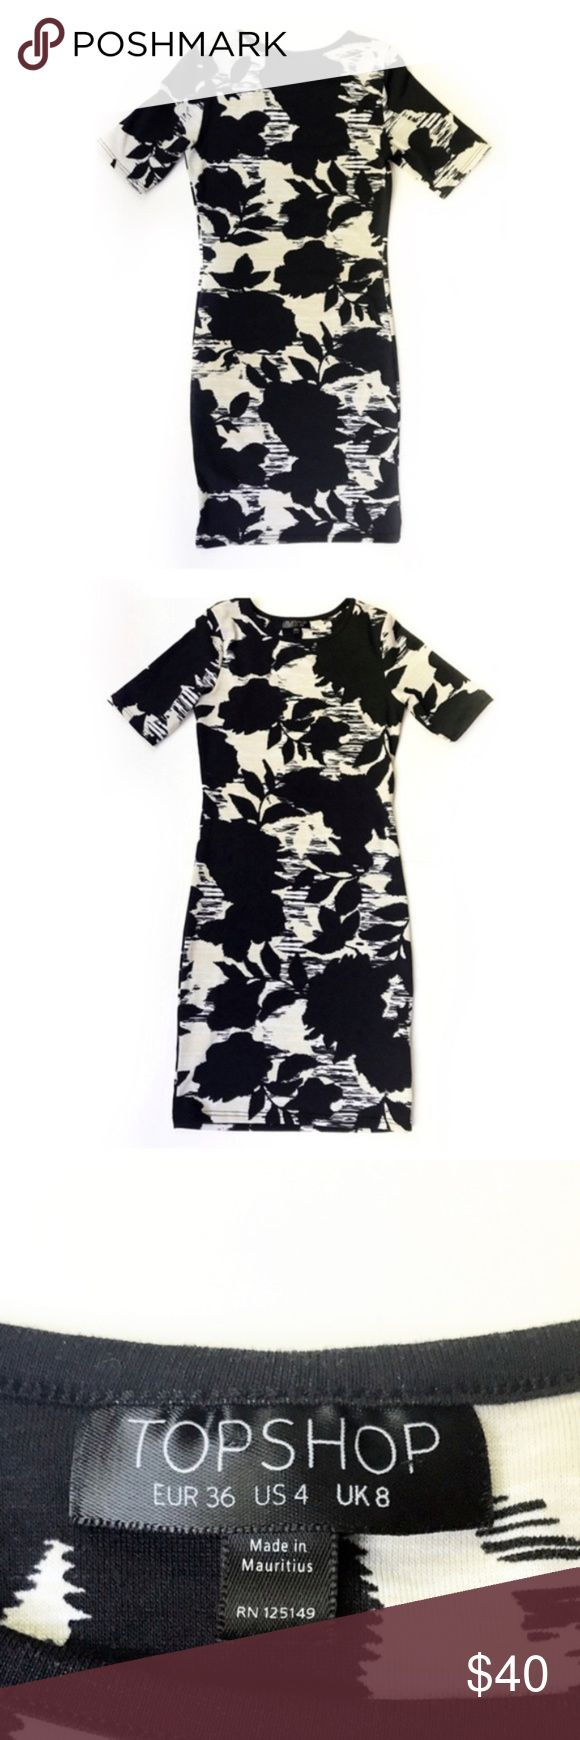 """Topshop Bodycon Floral Print Dress US size 4 Topshop bodycon dress with floral print stretch dress. Excellent Condition. Super cute. Fabric content 91% polyester and 9% elastane. Tag size UK 8, EURO 36, US 4. Approximate measurements laying flat: armpit to armpit 14"""", length shoulder to hem 32.5"""". Bundle & Save! Topshop Dresses"""